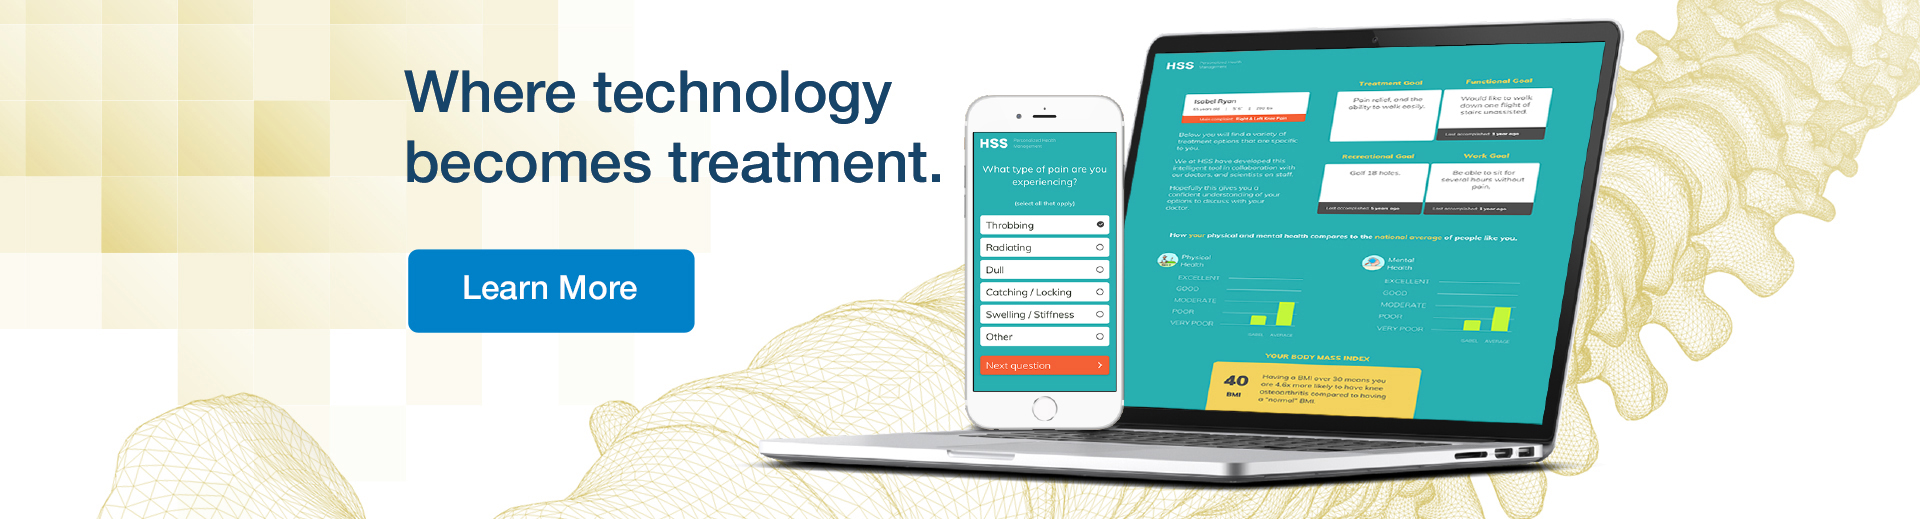 Laptop with HSS application. And the text on image: where technology becomes treatment. Click to learn more about Personalized Health Management Tool